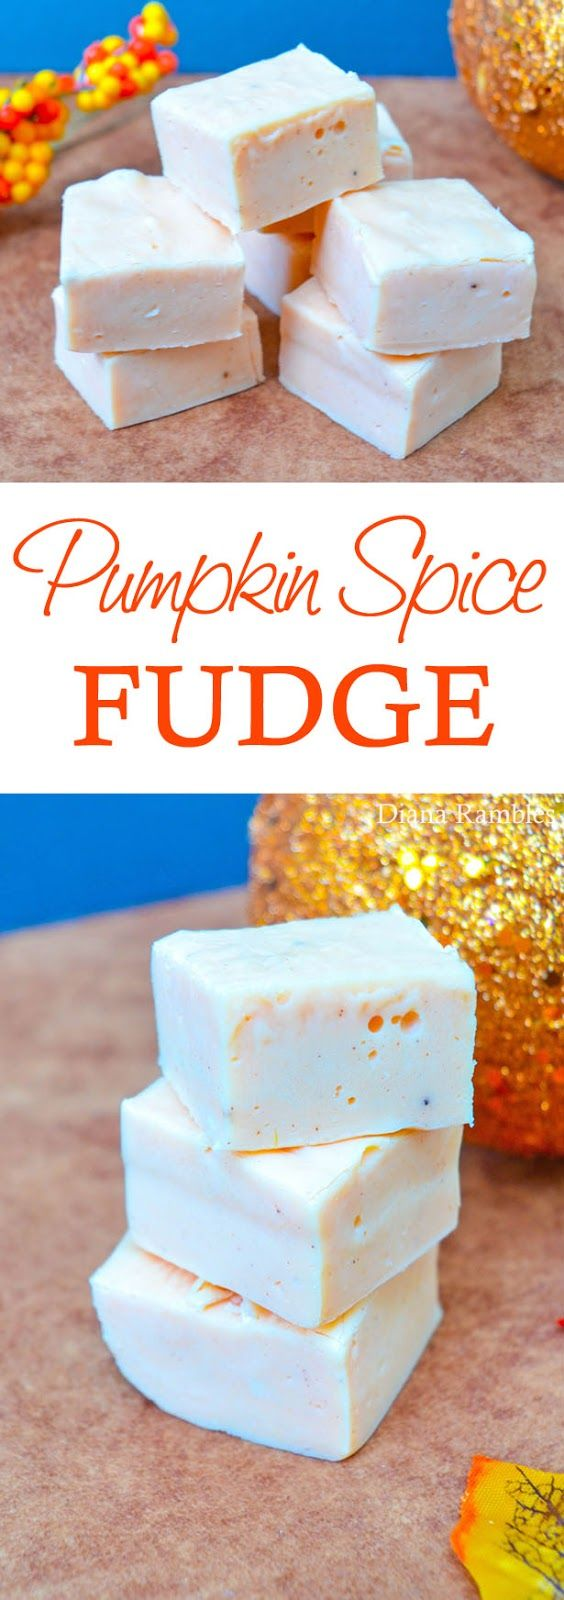 Pumpkin Spice Microwave Fudge #pumpkin #fudge